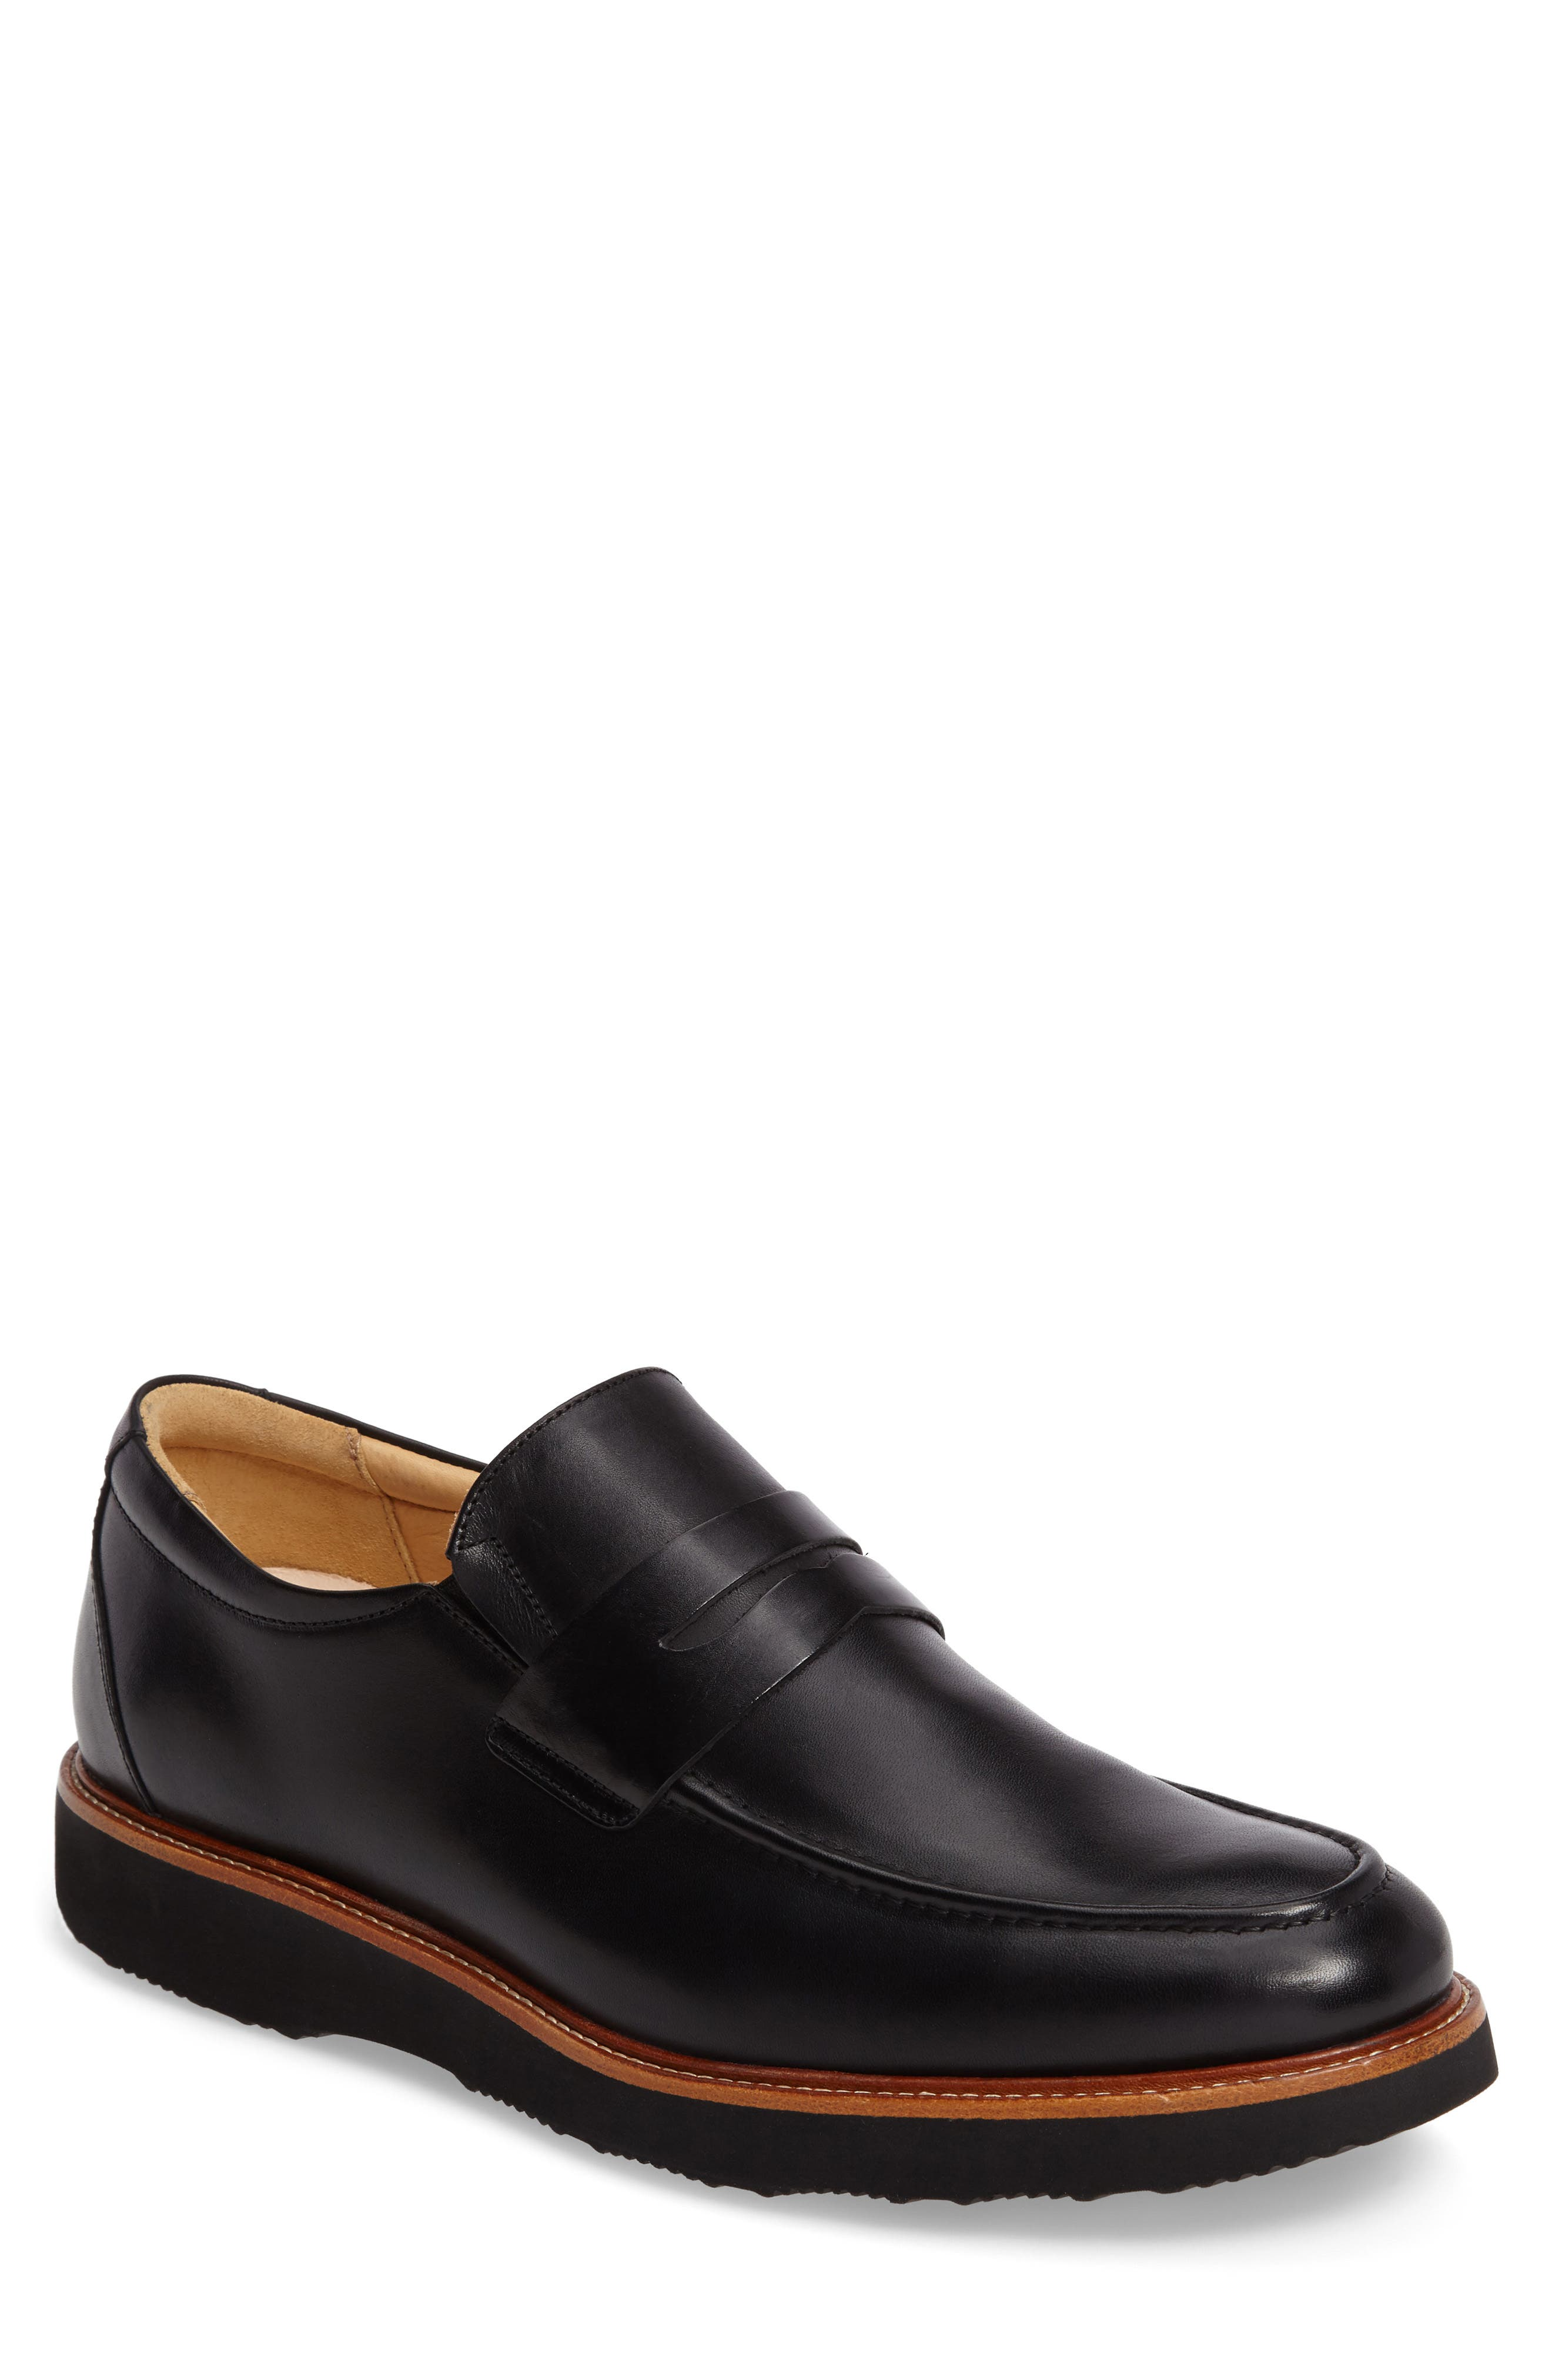 Ivy Legend Penny Loafer,                             Main thumbnail 1, color,                             Black Full Grain